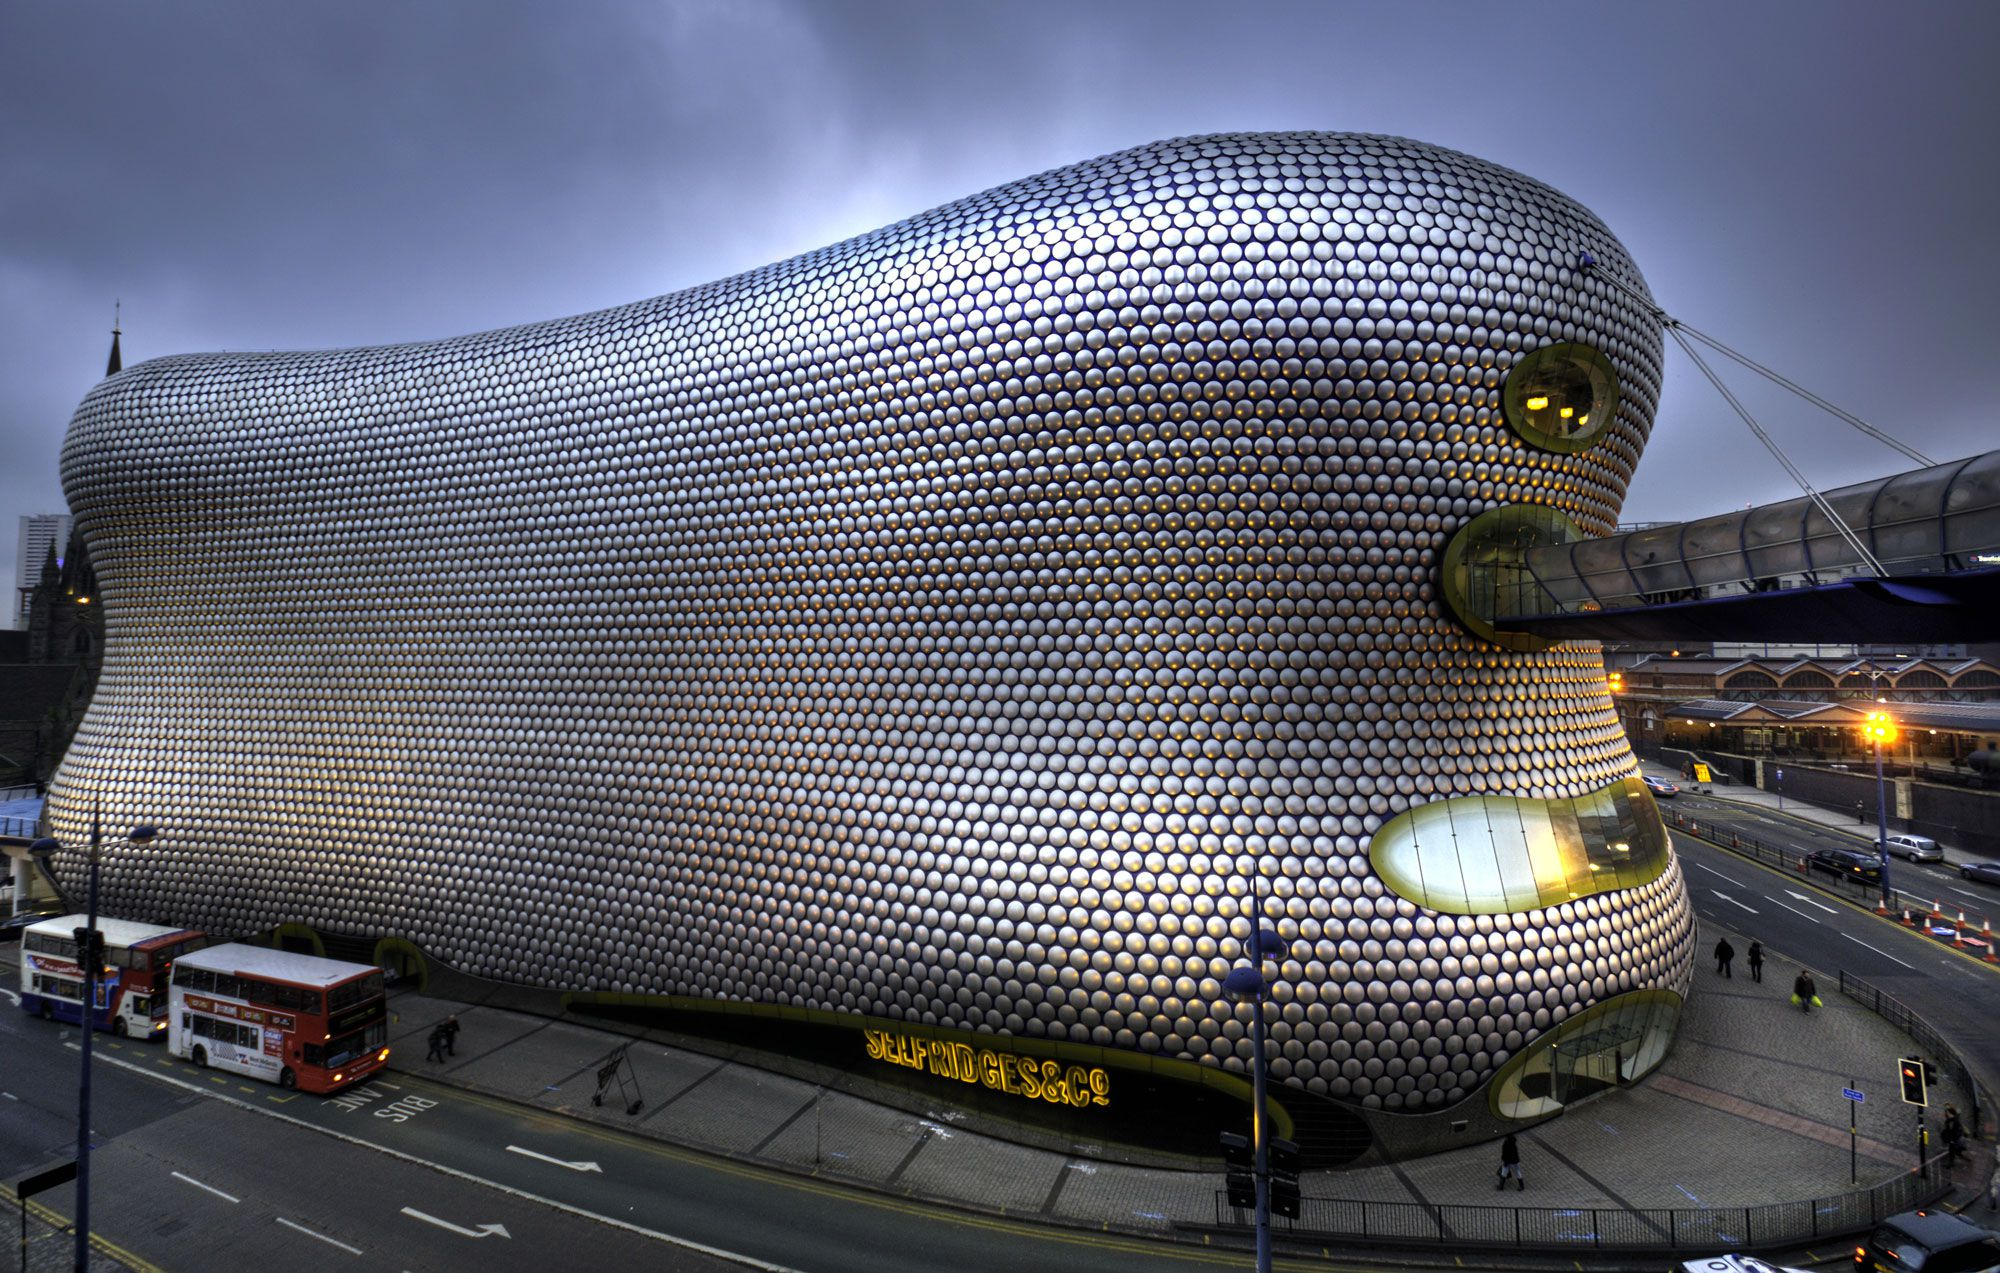 the Selfridges Building Birmingham